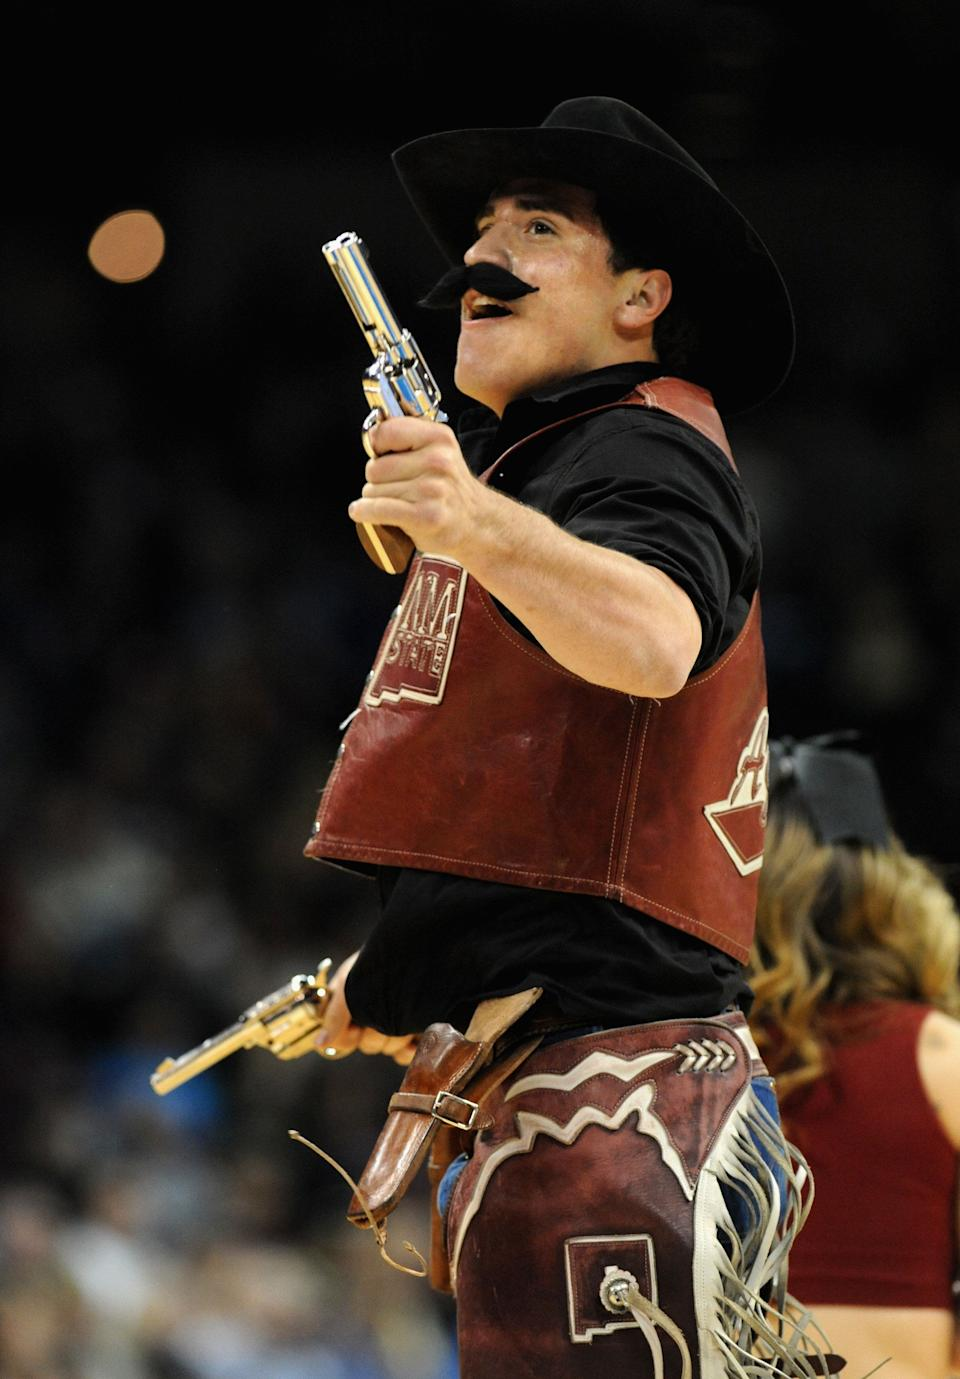 SPOKANE, WA - MARCH 20:  The New Mexico State Aggies mascot performs during the second round of the 2014 NCAA Men's Basketball Tournament against the San Diego State Aztecs at Spokane Veterans Memorial Arena on March 20, 2014 in Spokane, Washington.  (Photo by Steve Dykes/Getty Images)